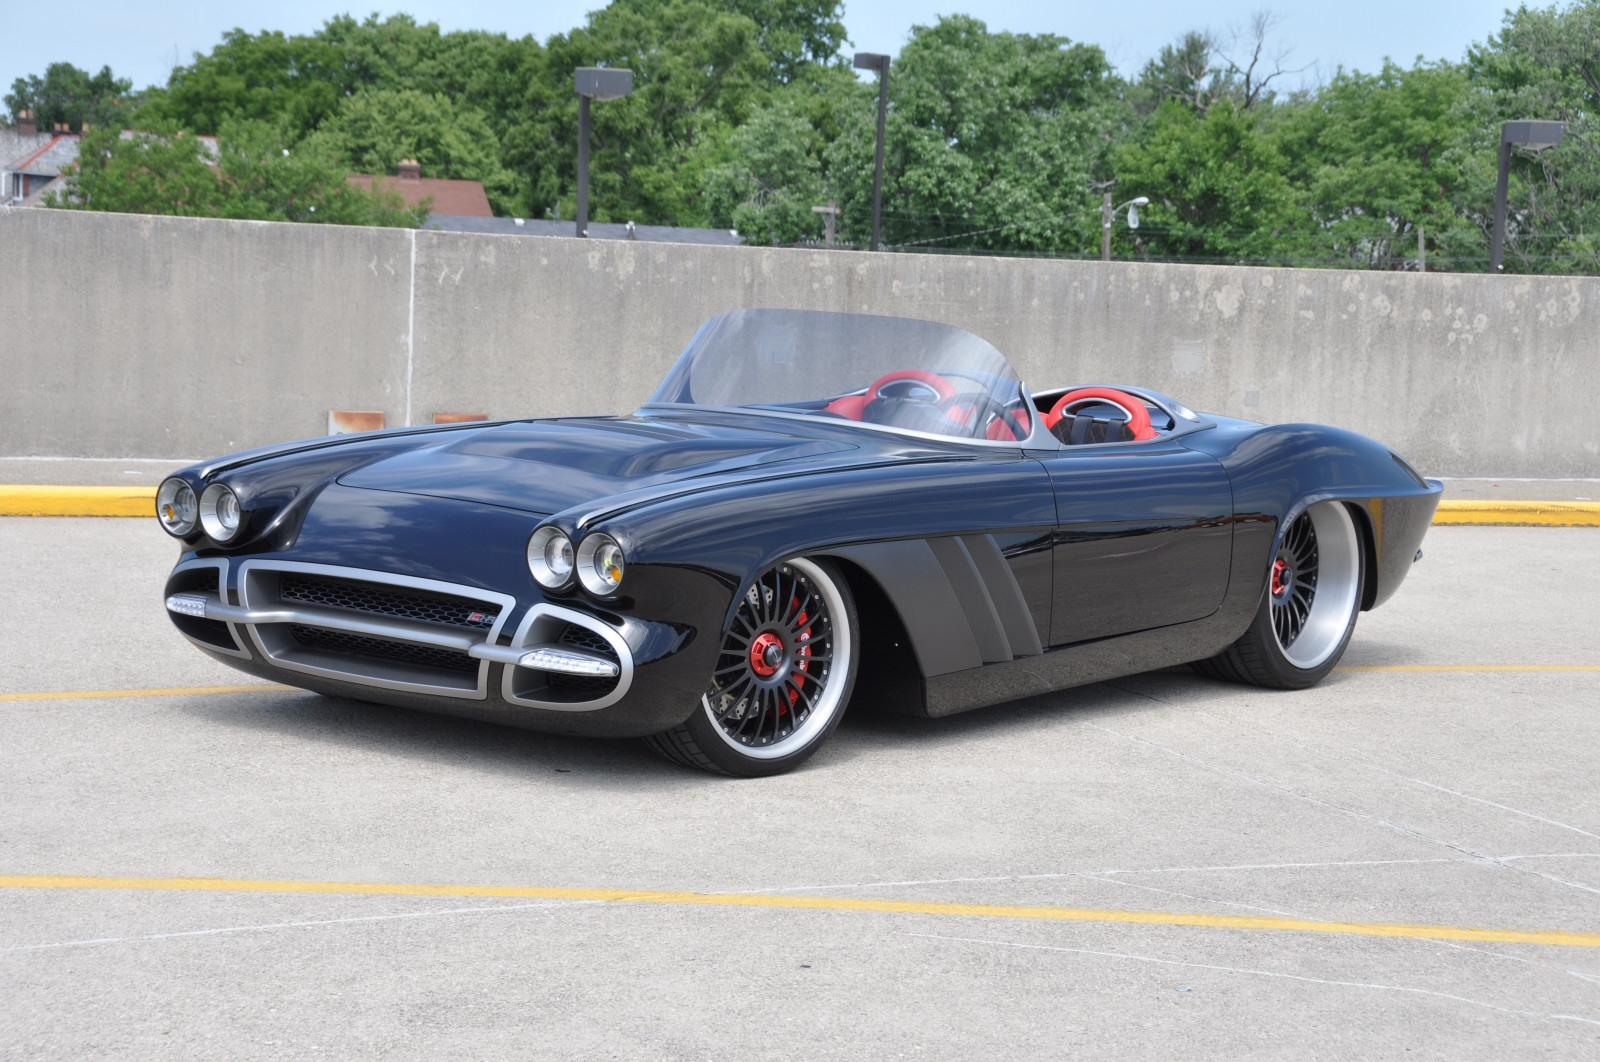 PPG-Painted Corvette Wins 'Street Machine of the Year' at